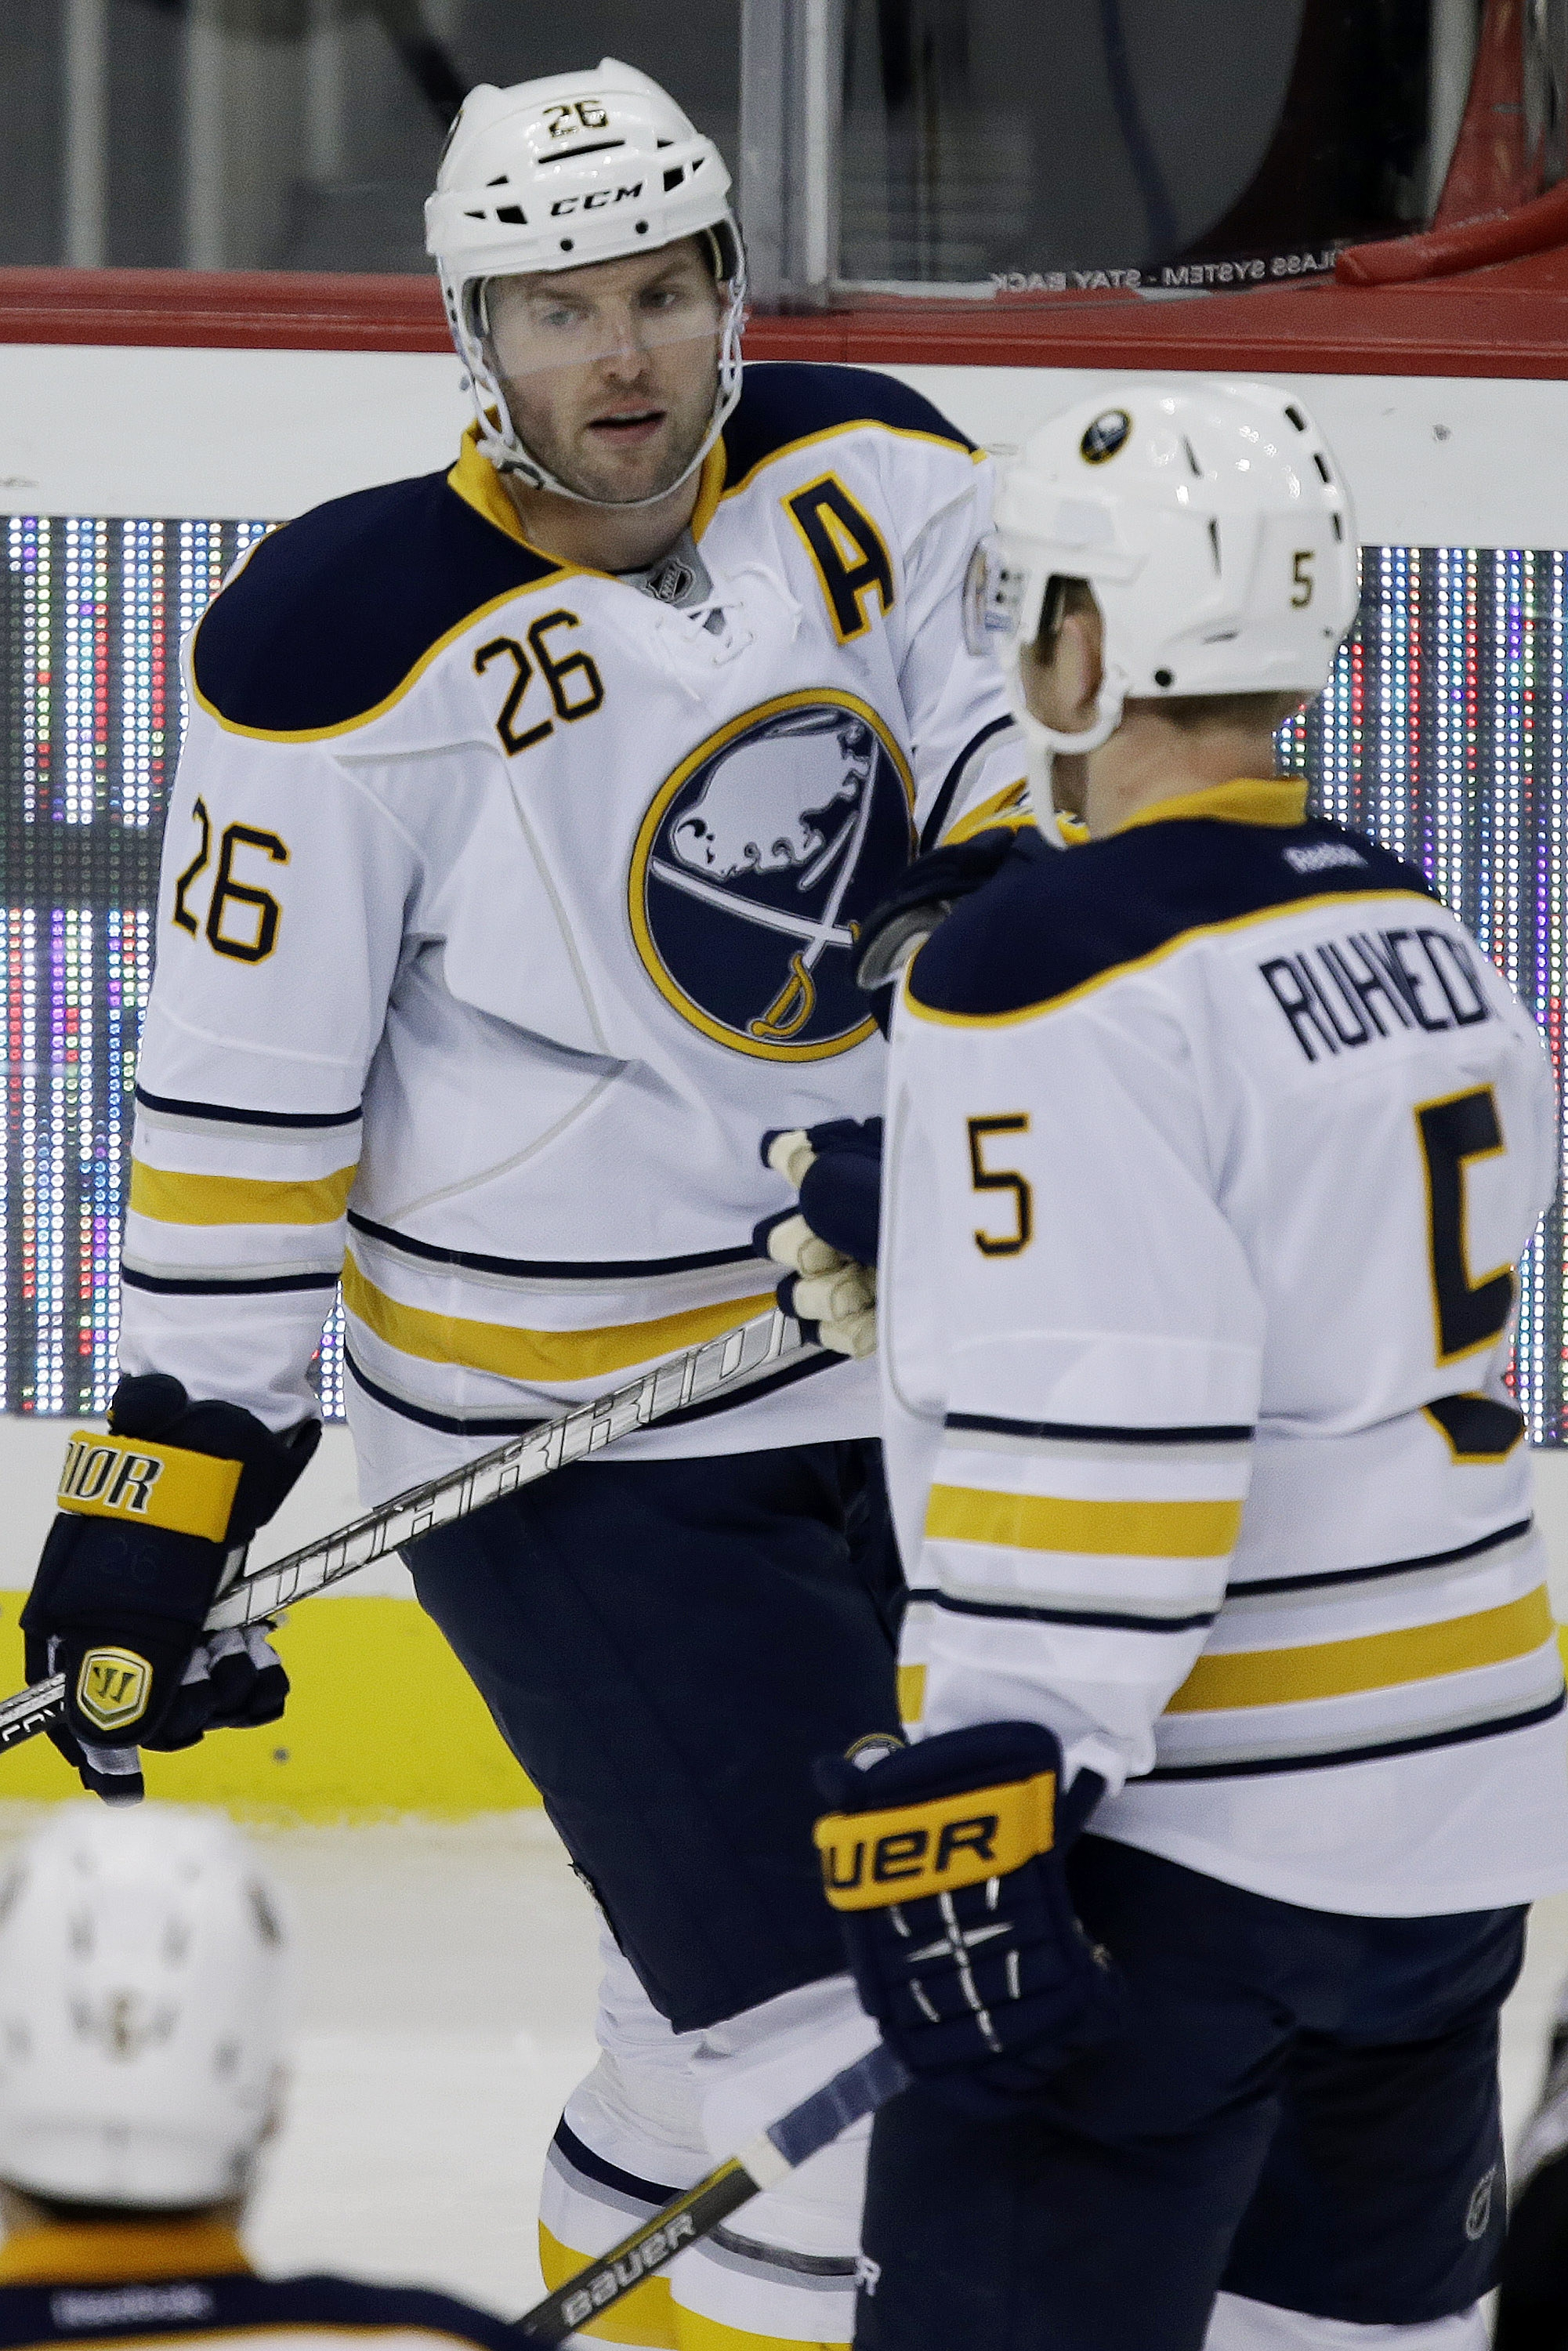 Buffalo's Thomas Vanek (26) celebrates his first goal of the game with teammate Chad Ruhwedel during a 4-2 victory.